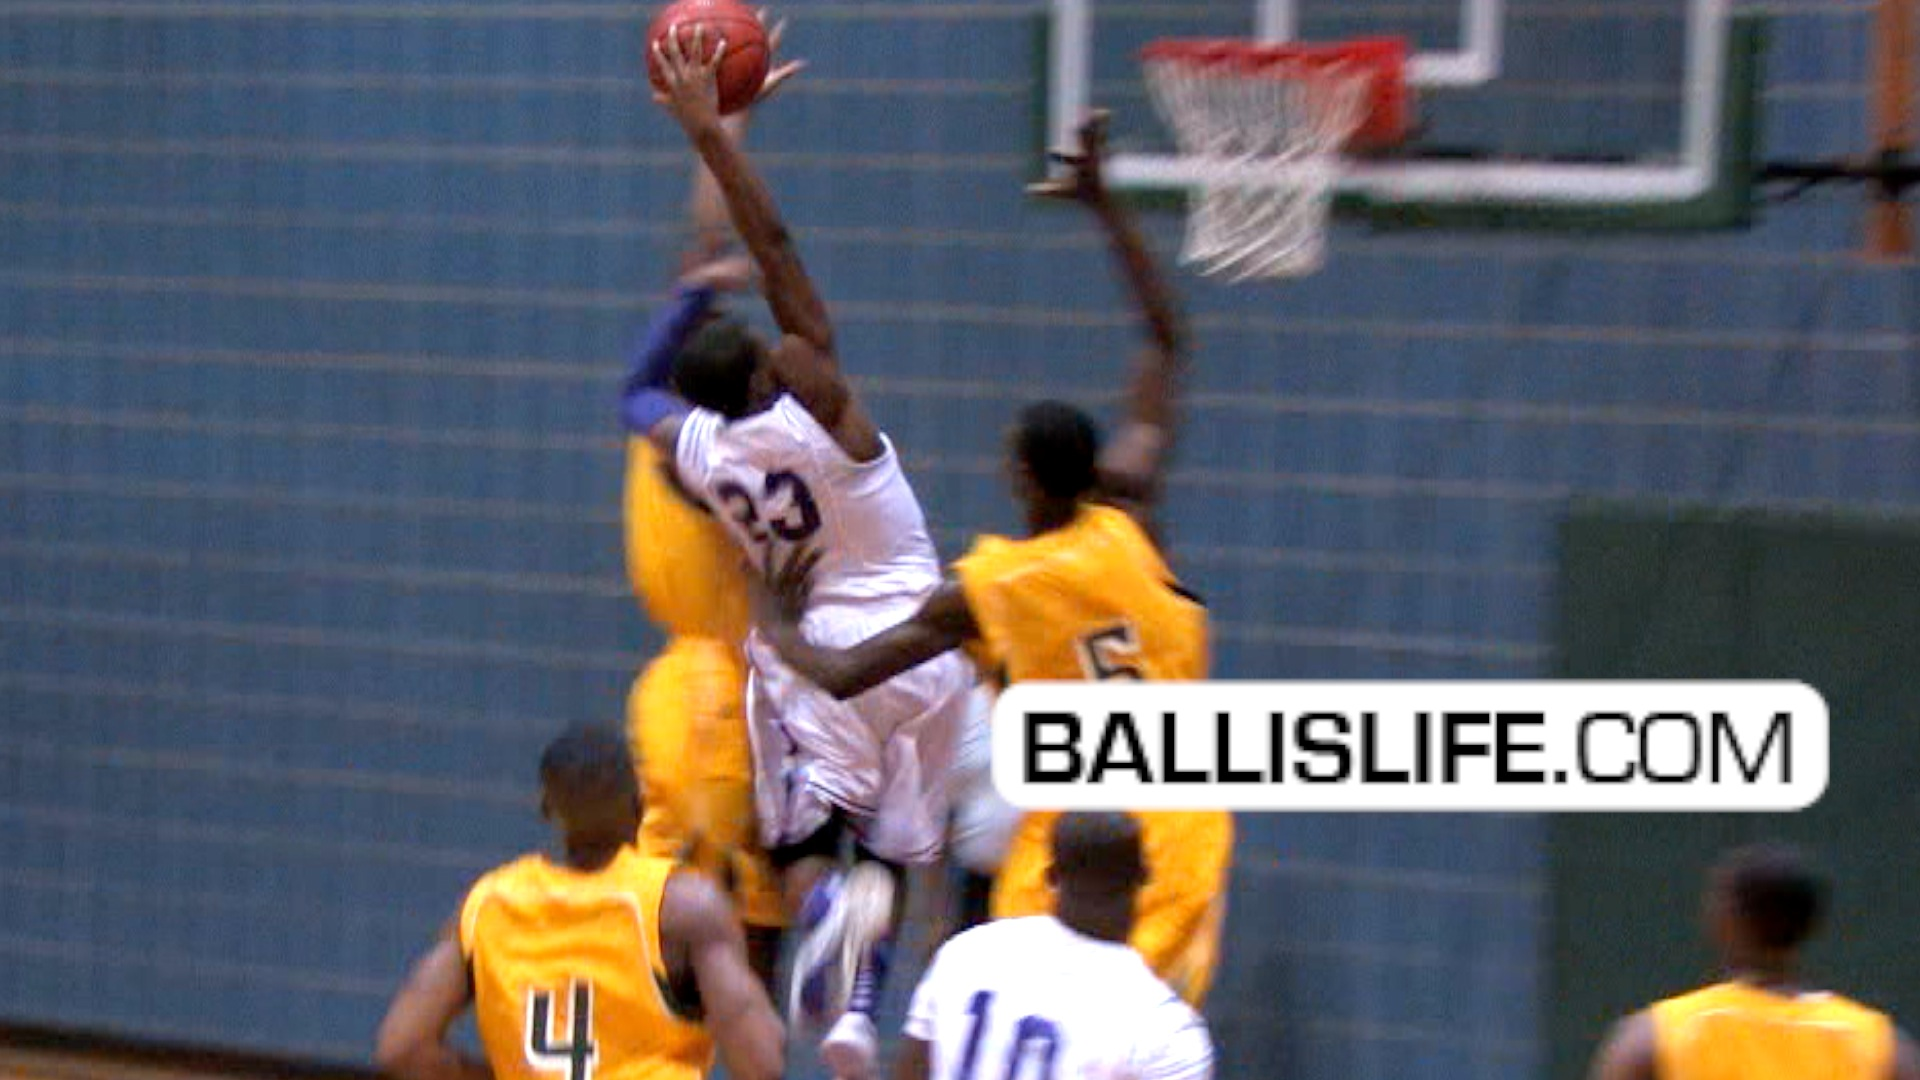 Ballislife | Shirmane Thomas Dunk